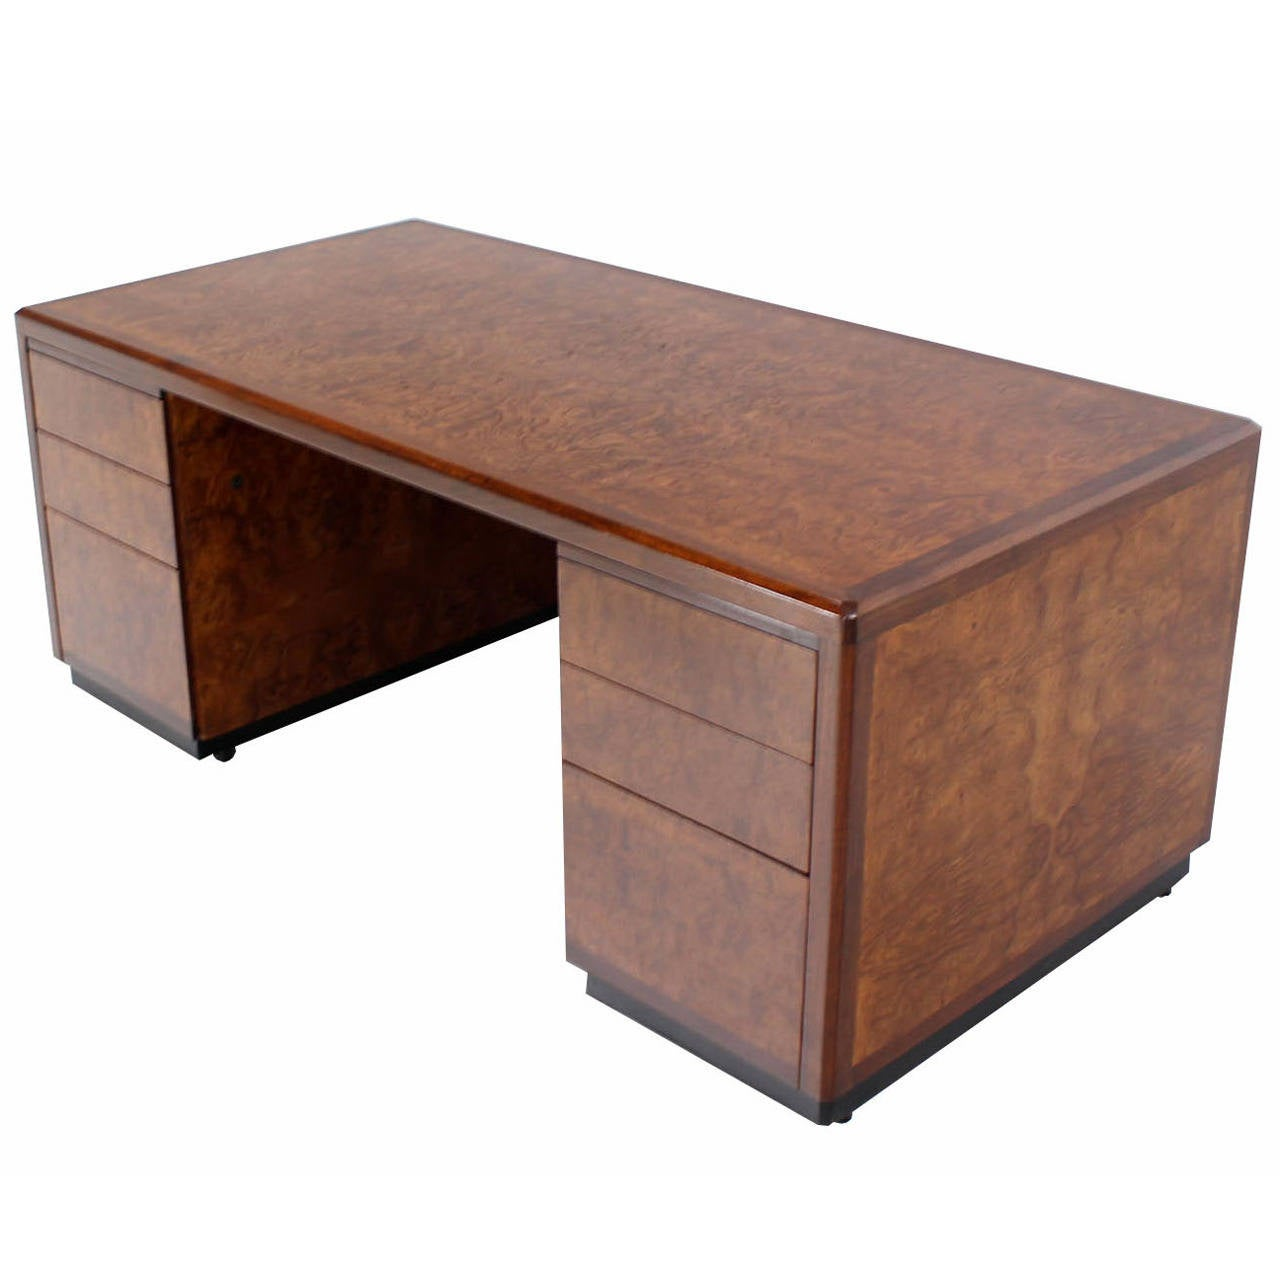 Large Executive Burl Wood Desk By Davis Allen At 1stdibs. Average Desk Height. Benches For Kitchen Table. Bar Table Behind Couch. Standing Desk Designs. Shadow Box End Table. Magellan Espresso L Shaped Desk. Studio Recording Desk. Workshop Table Plans